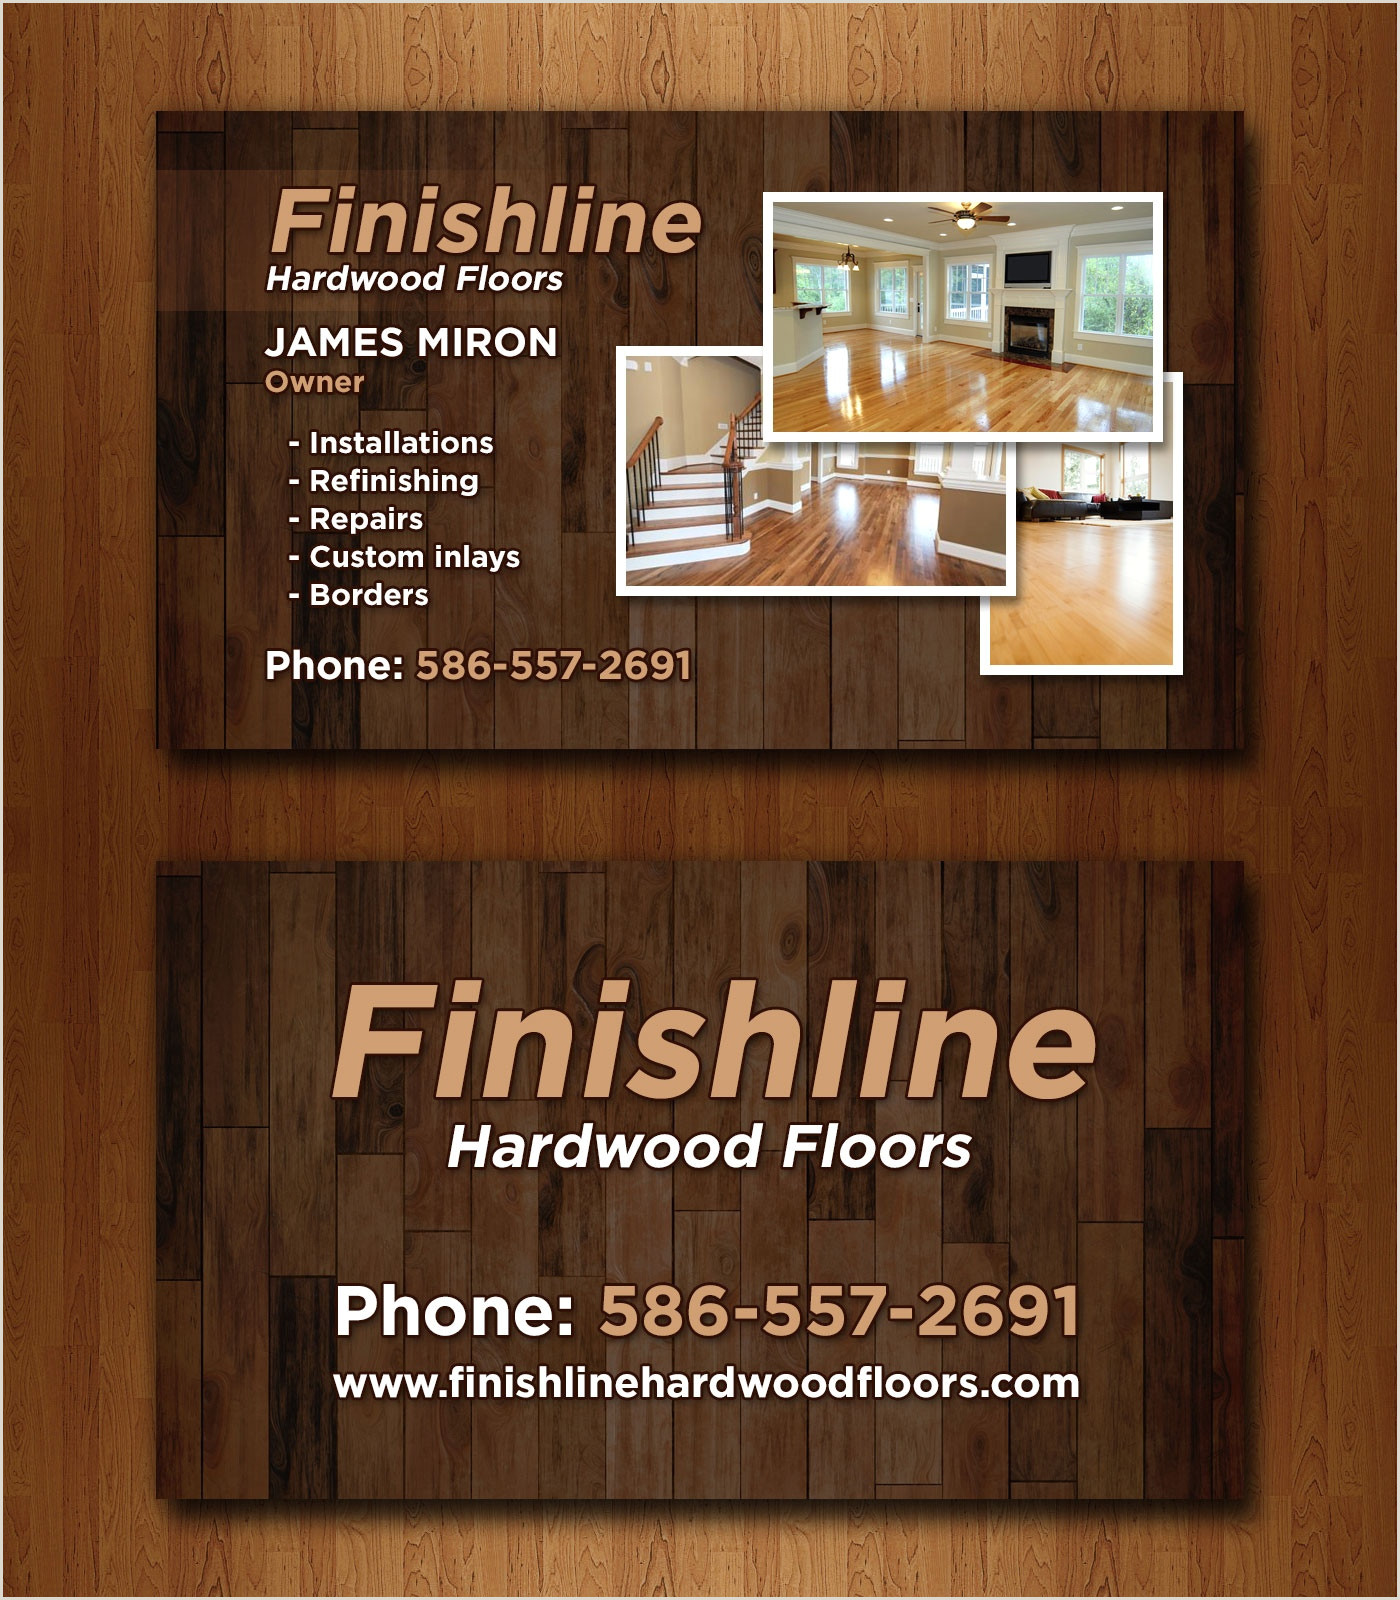 How To Make A Business Card In Word 14 Popular Hardwood Flooring Business Card Template